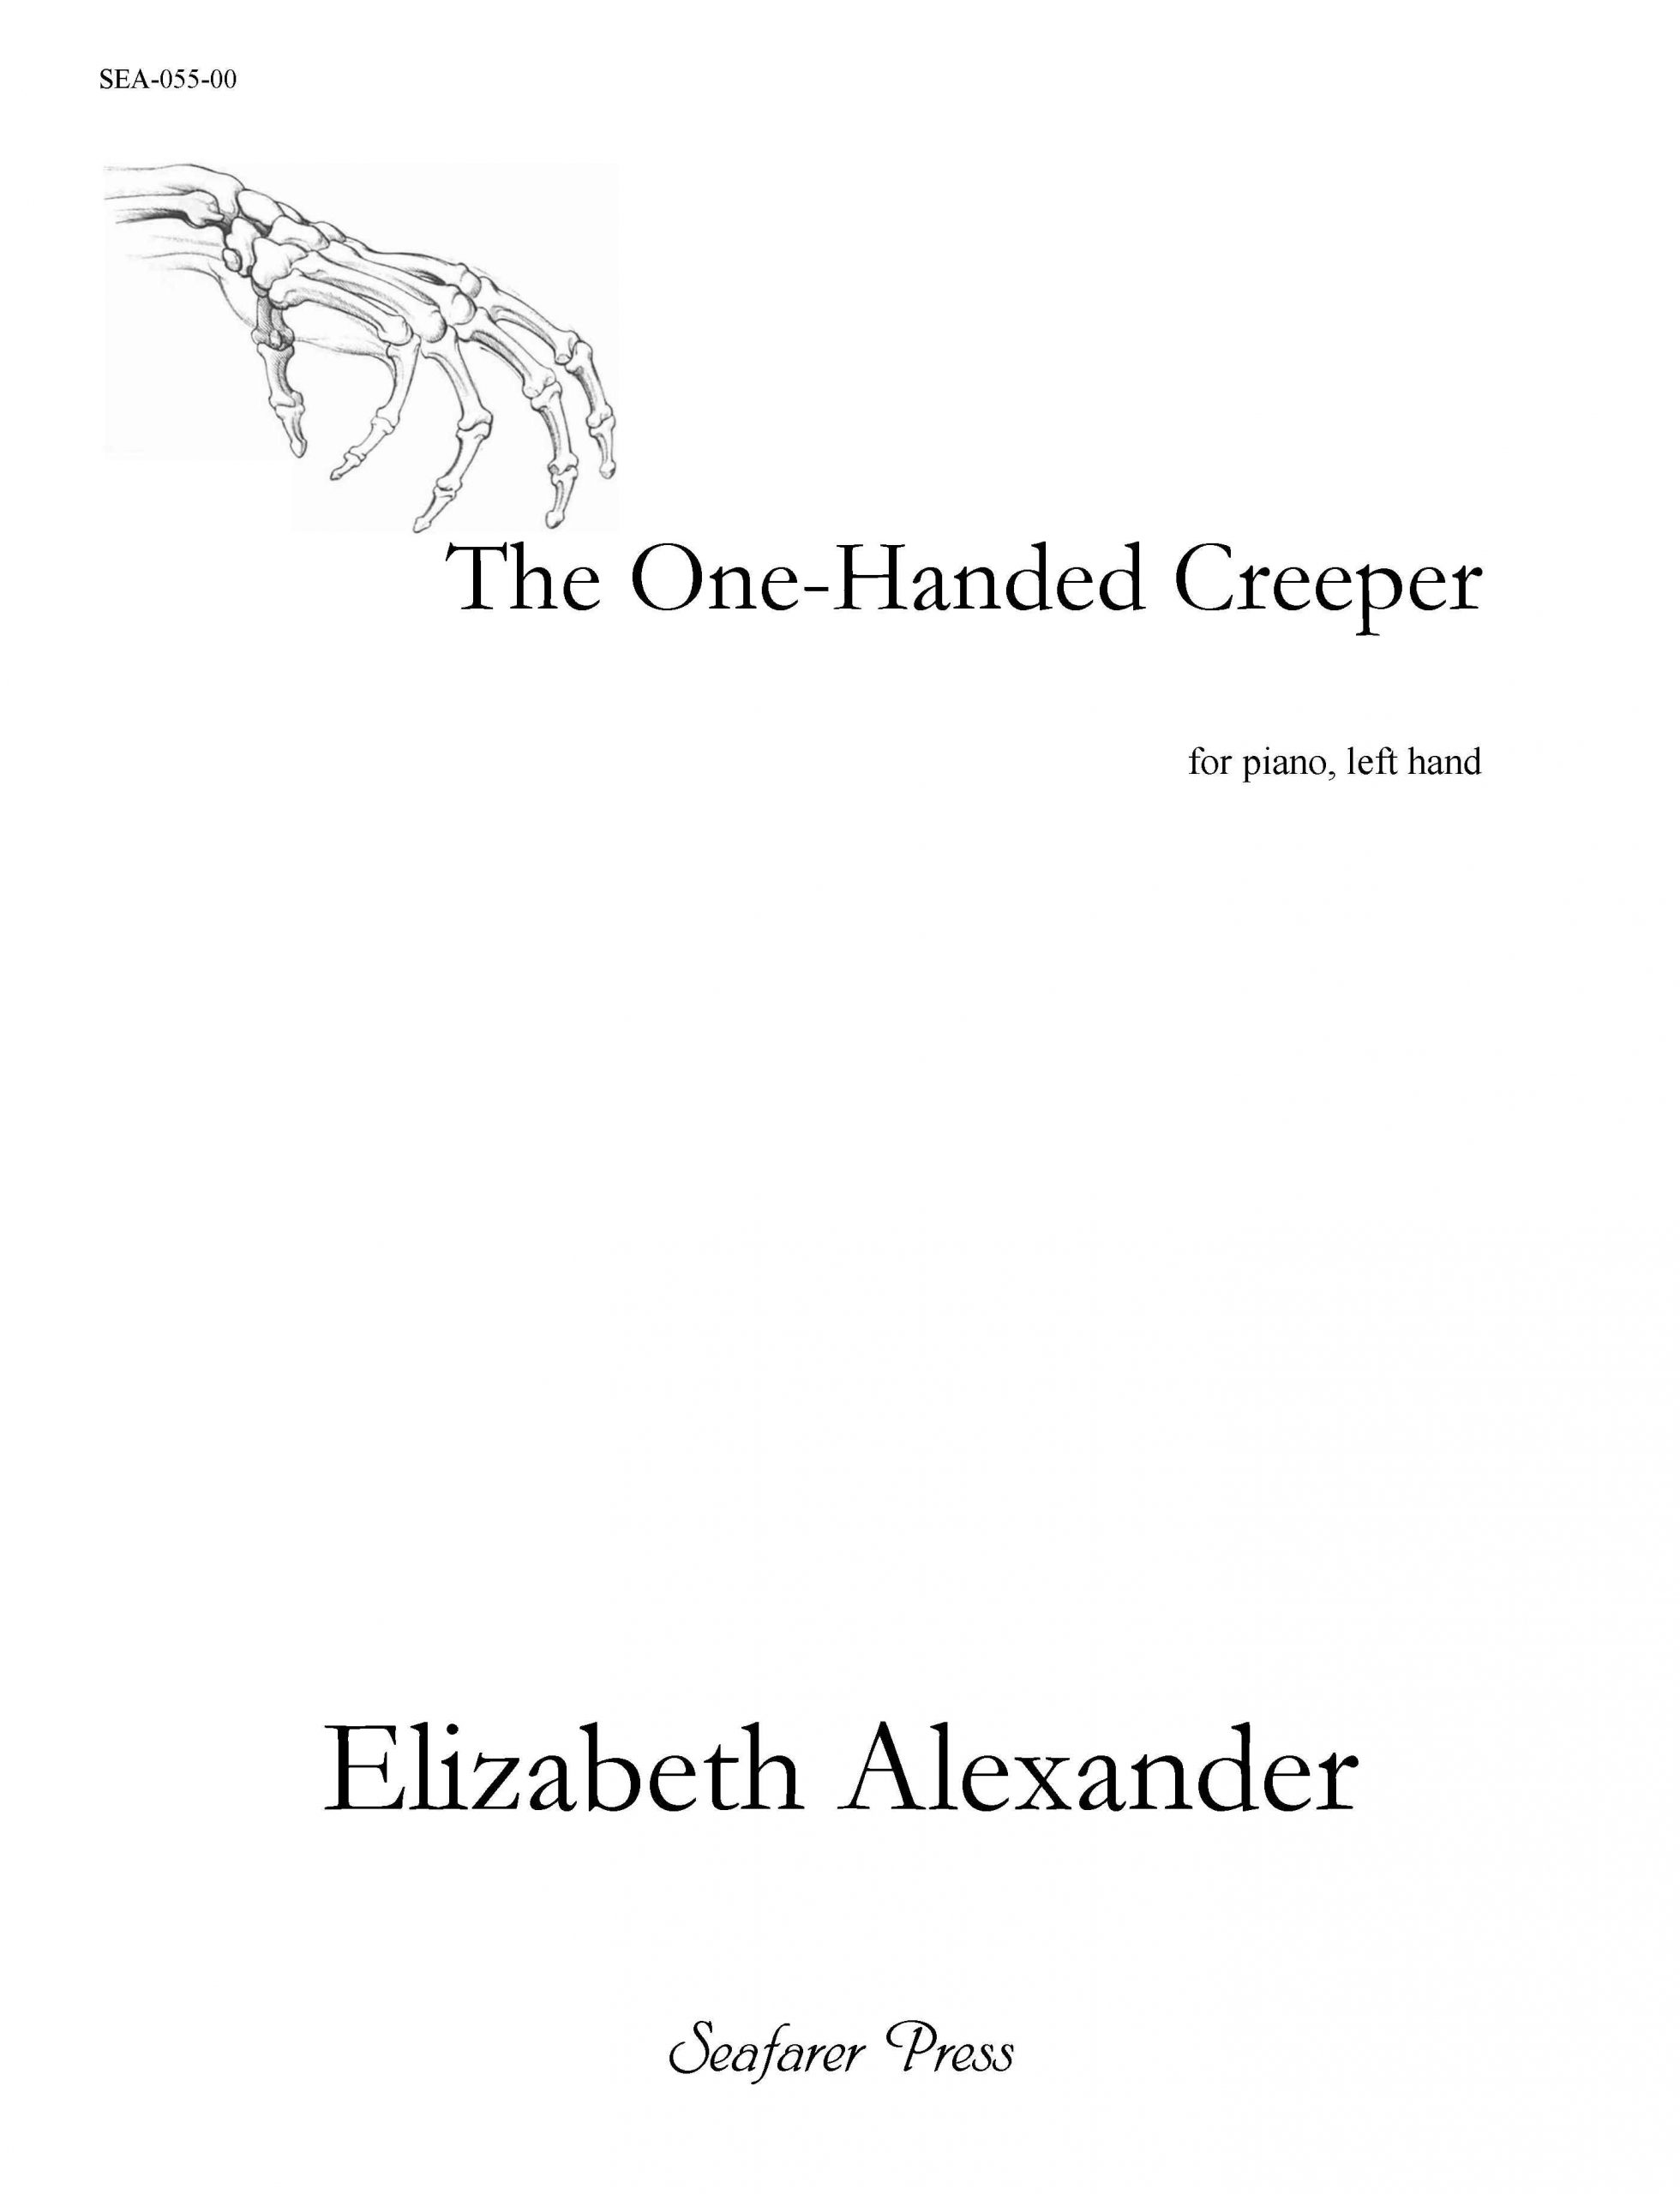 SEA-055-00 - The One-Handed Creeper